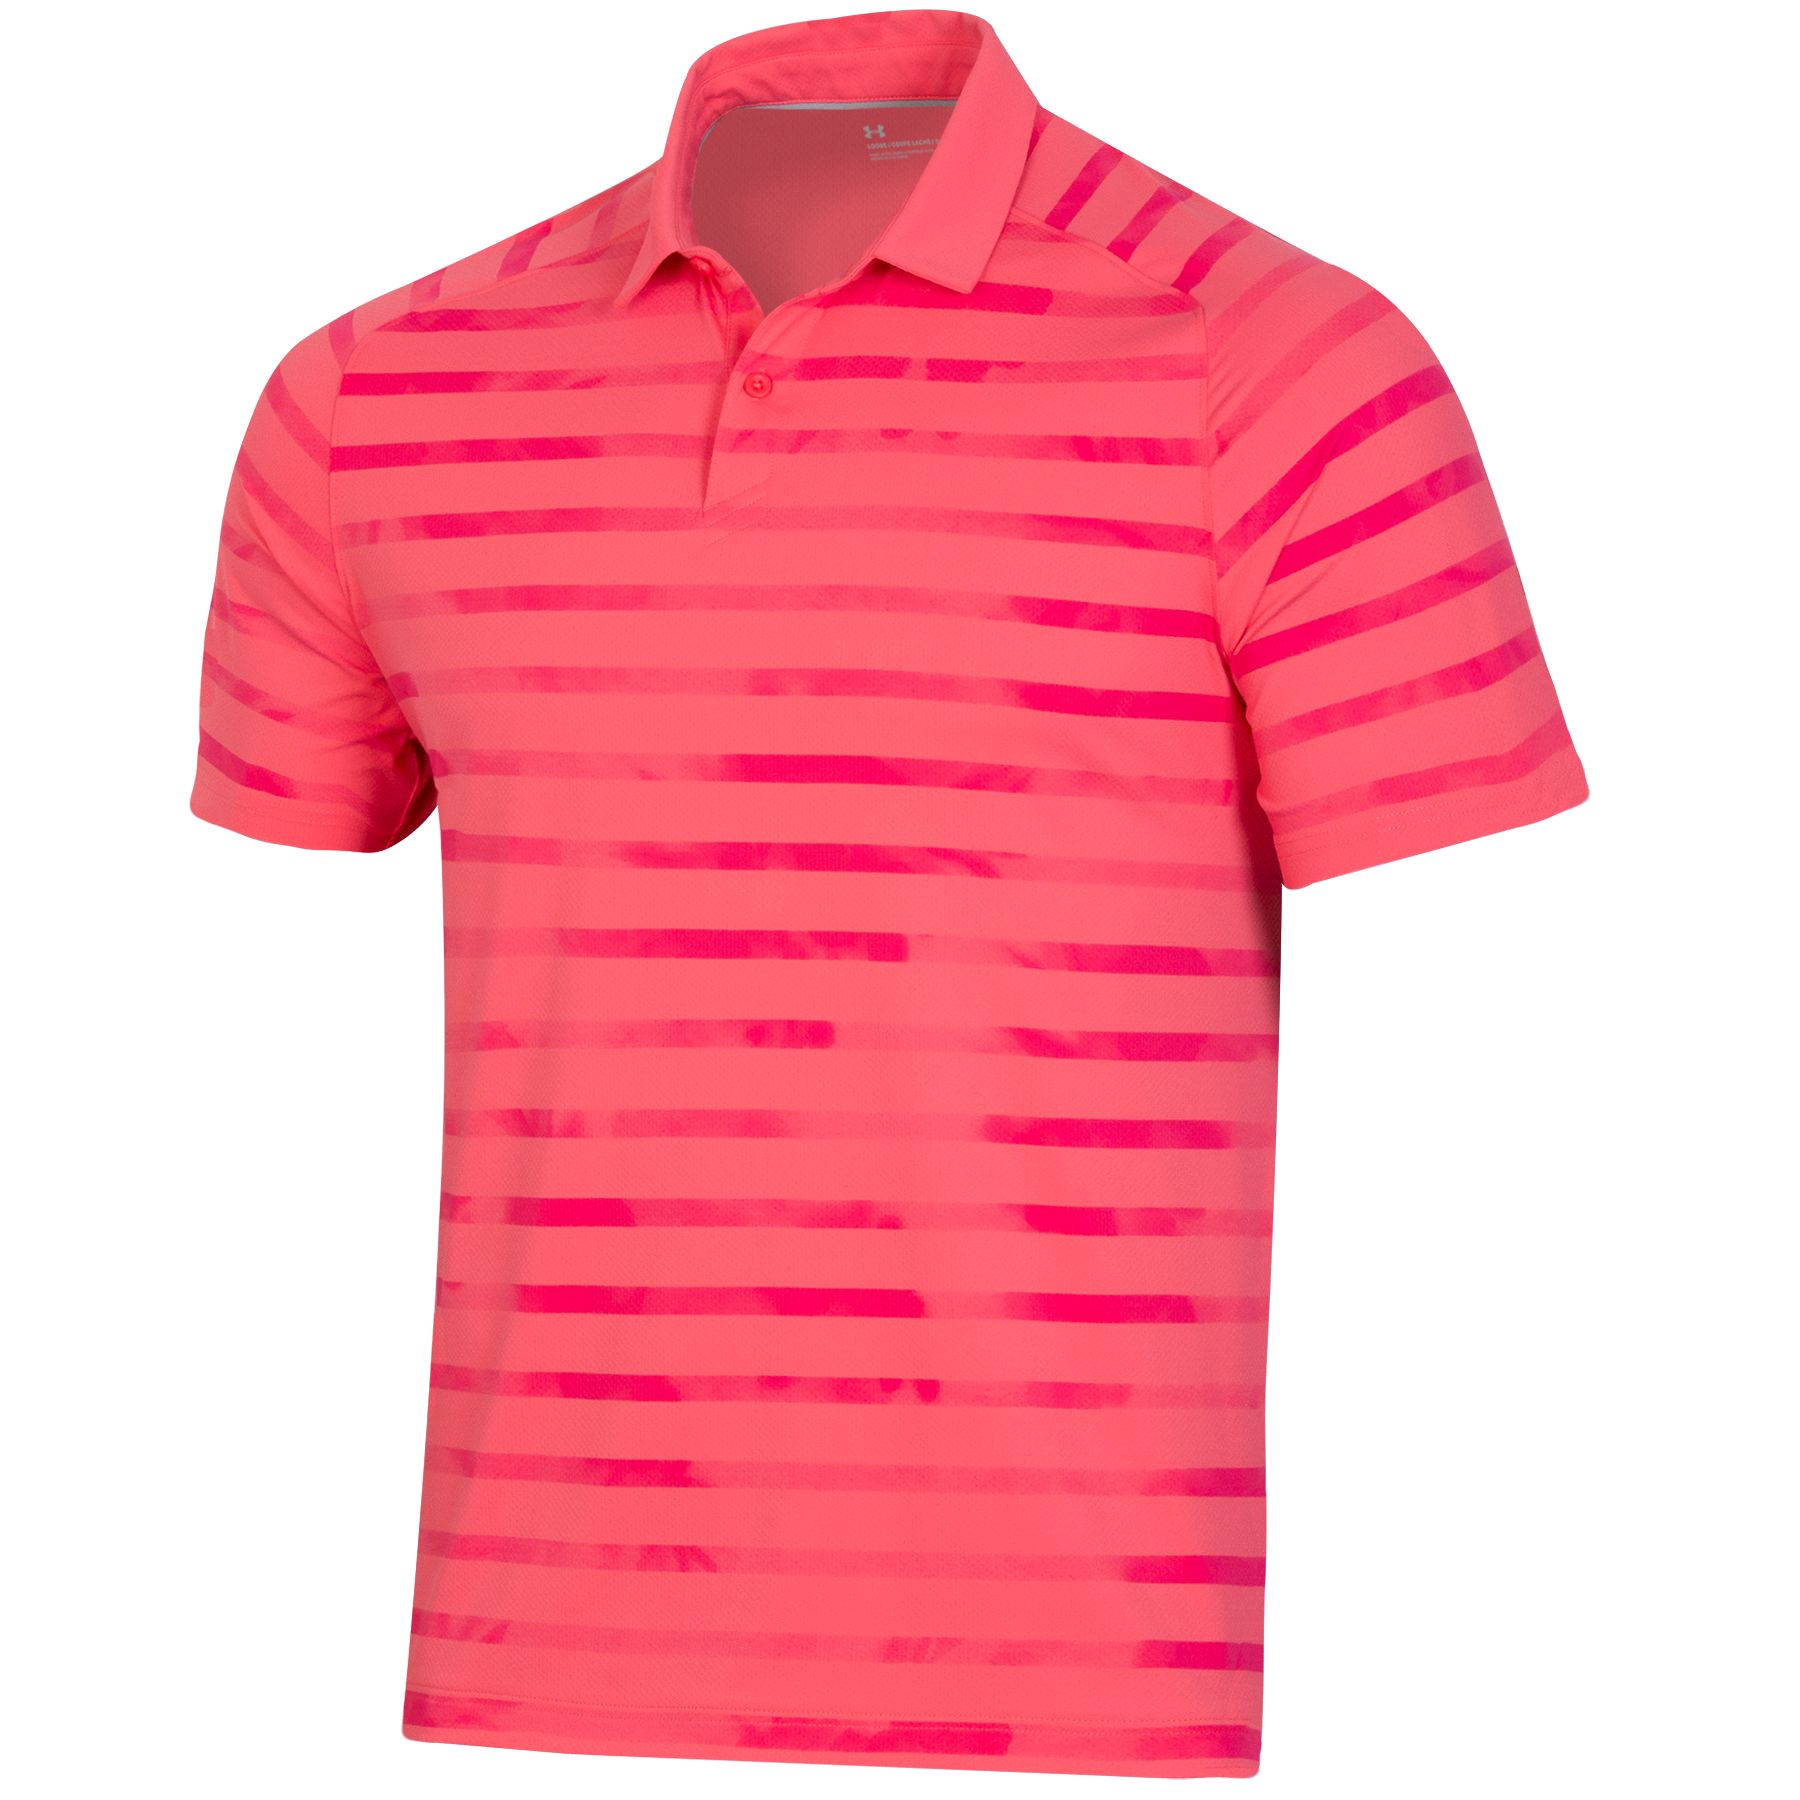 Under Armour Men's 2021 ISO-Chill Mixed Stripe Polo